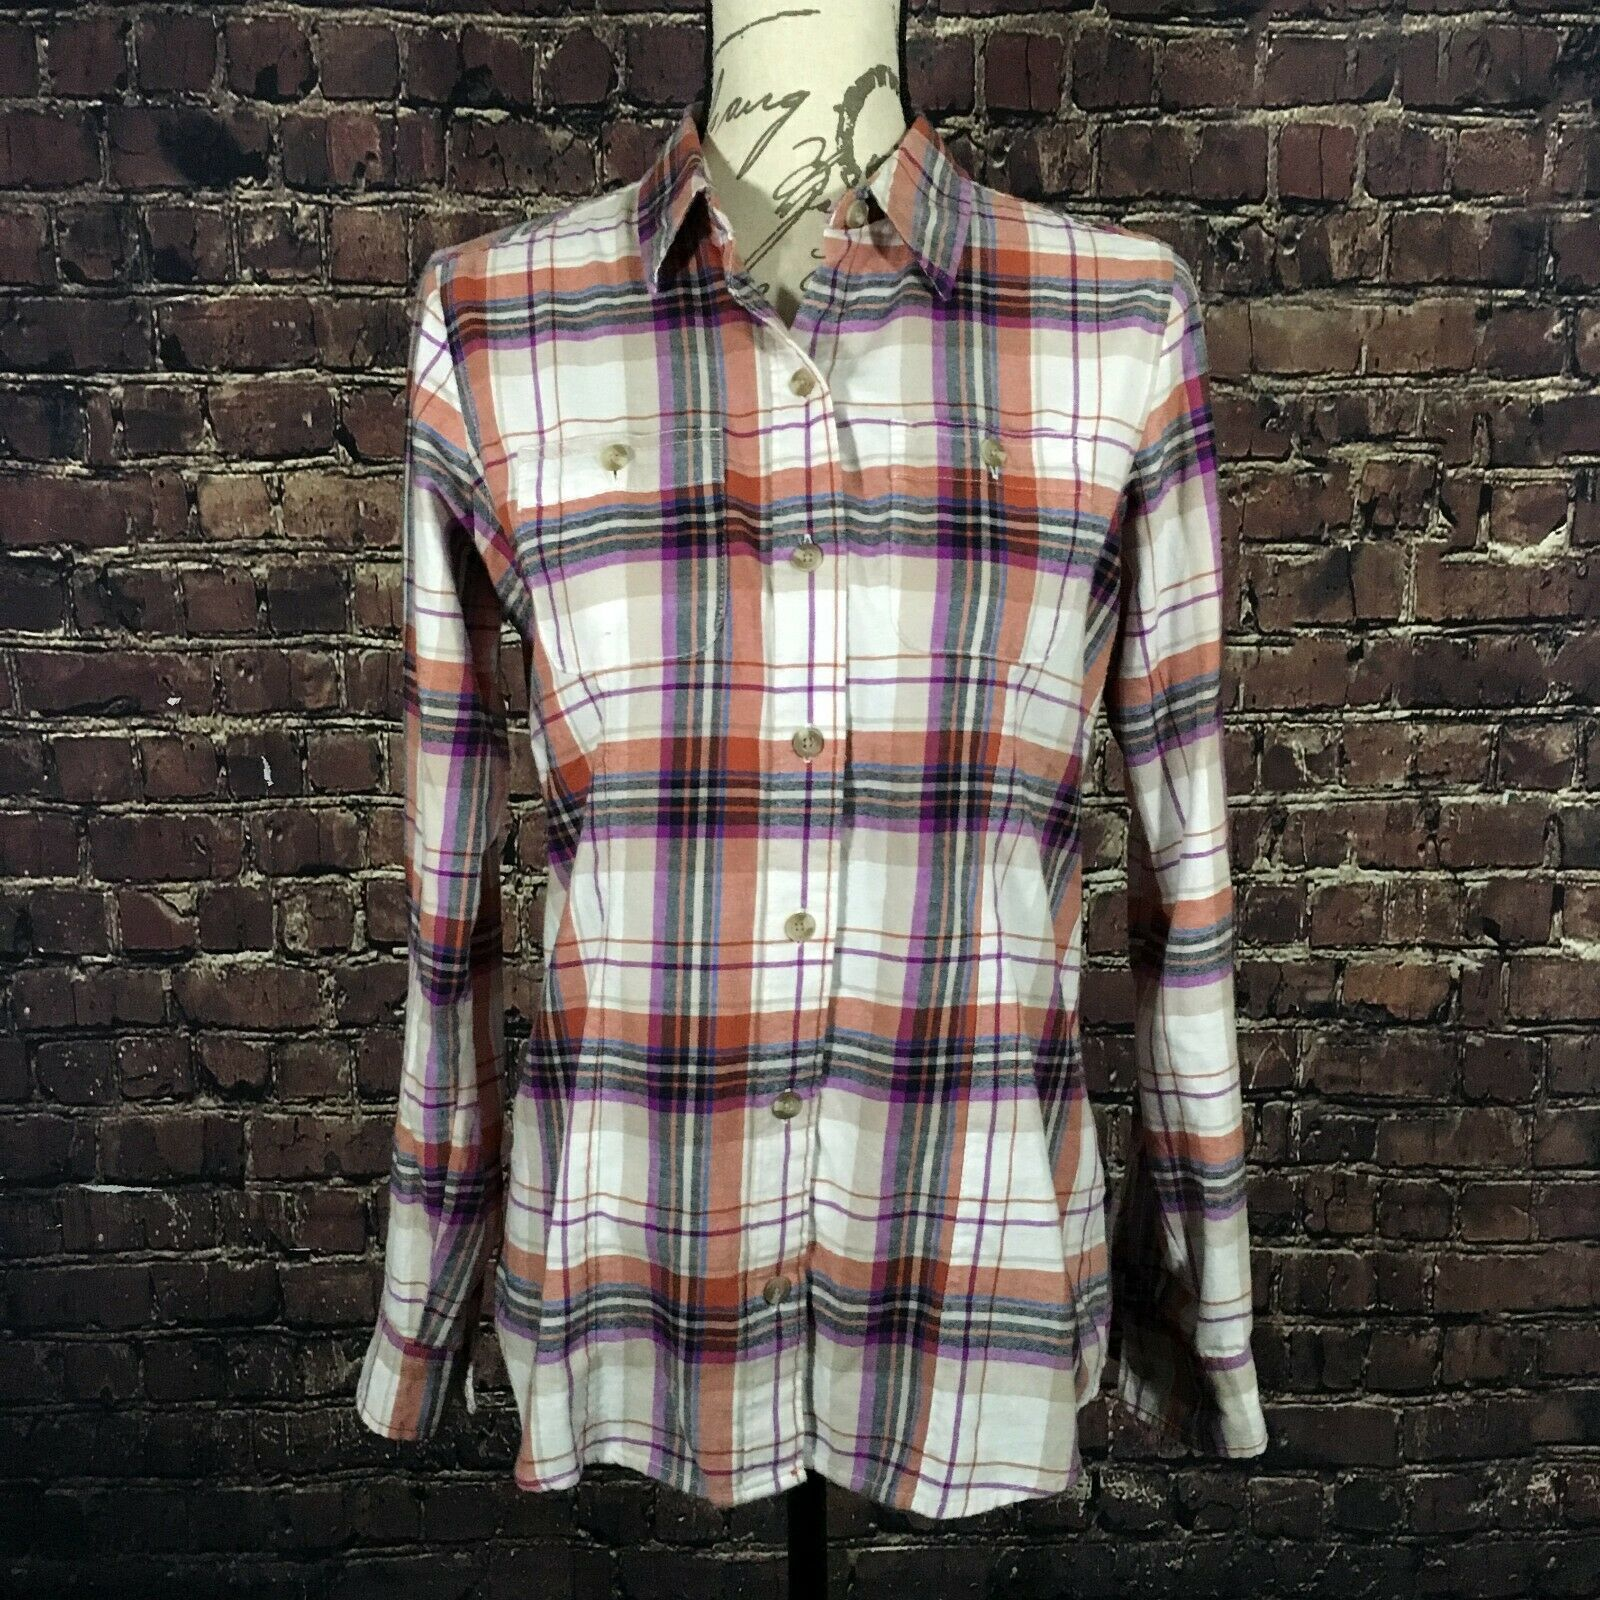 Eddie Bauer Women's Tall Stine's Favorite Packable Shirt Plaid Button Down SMALL